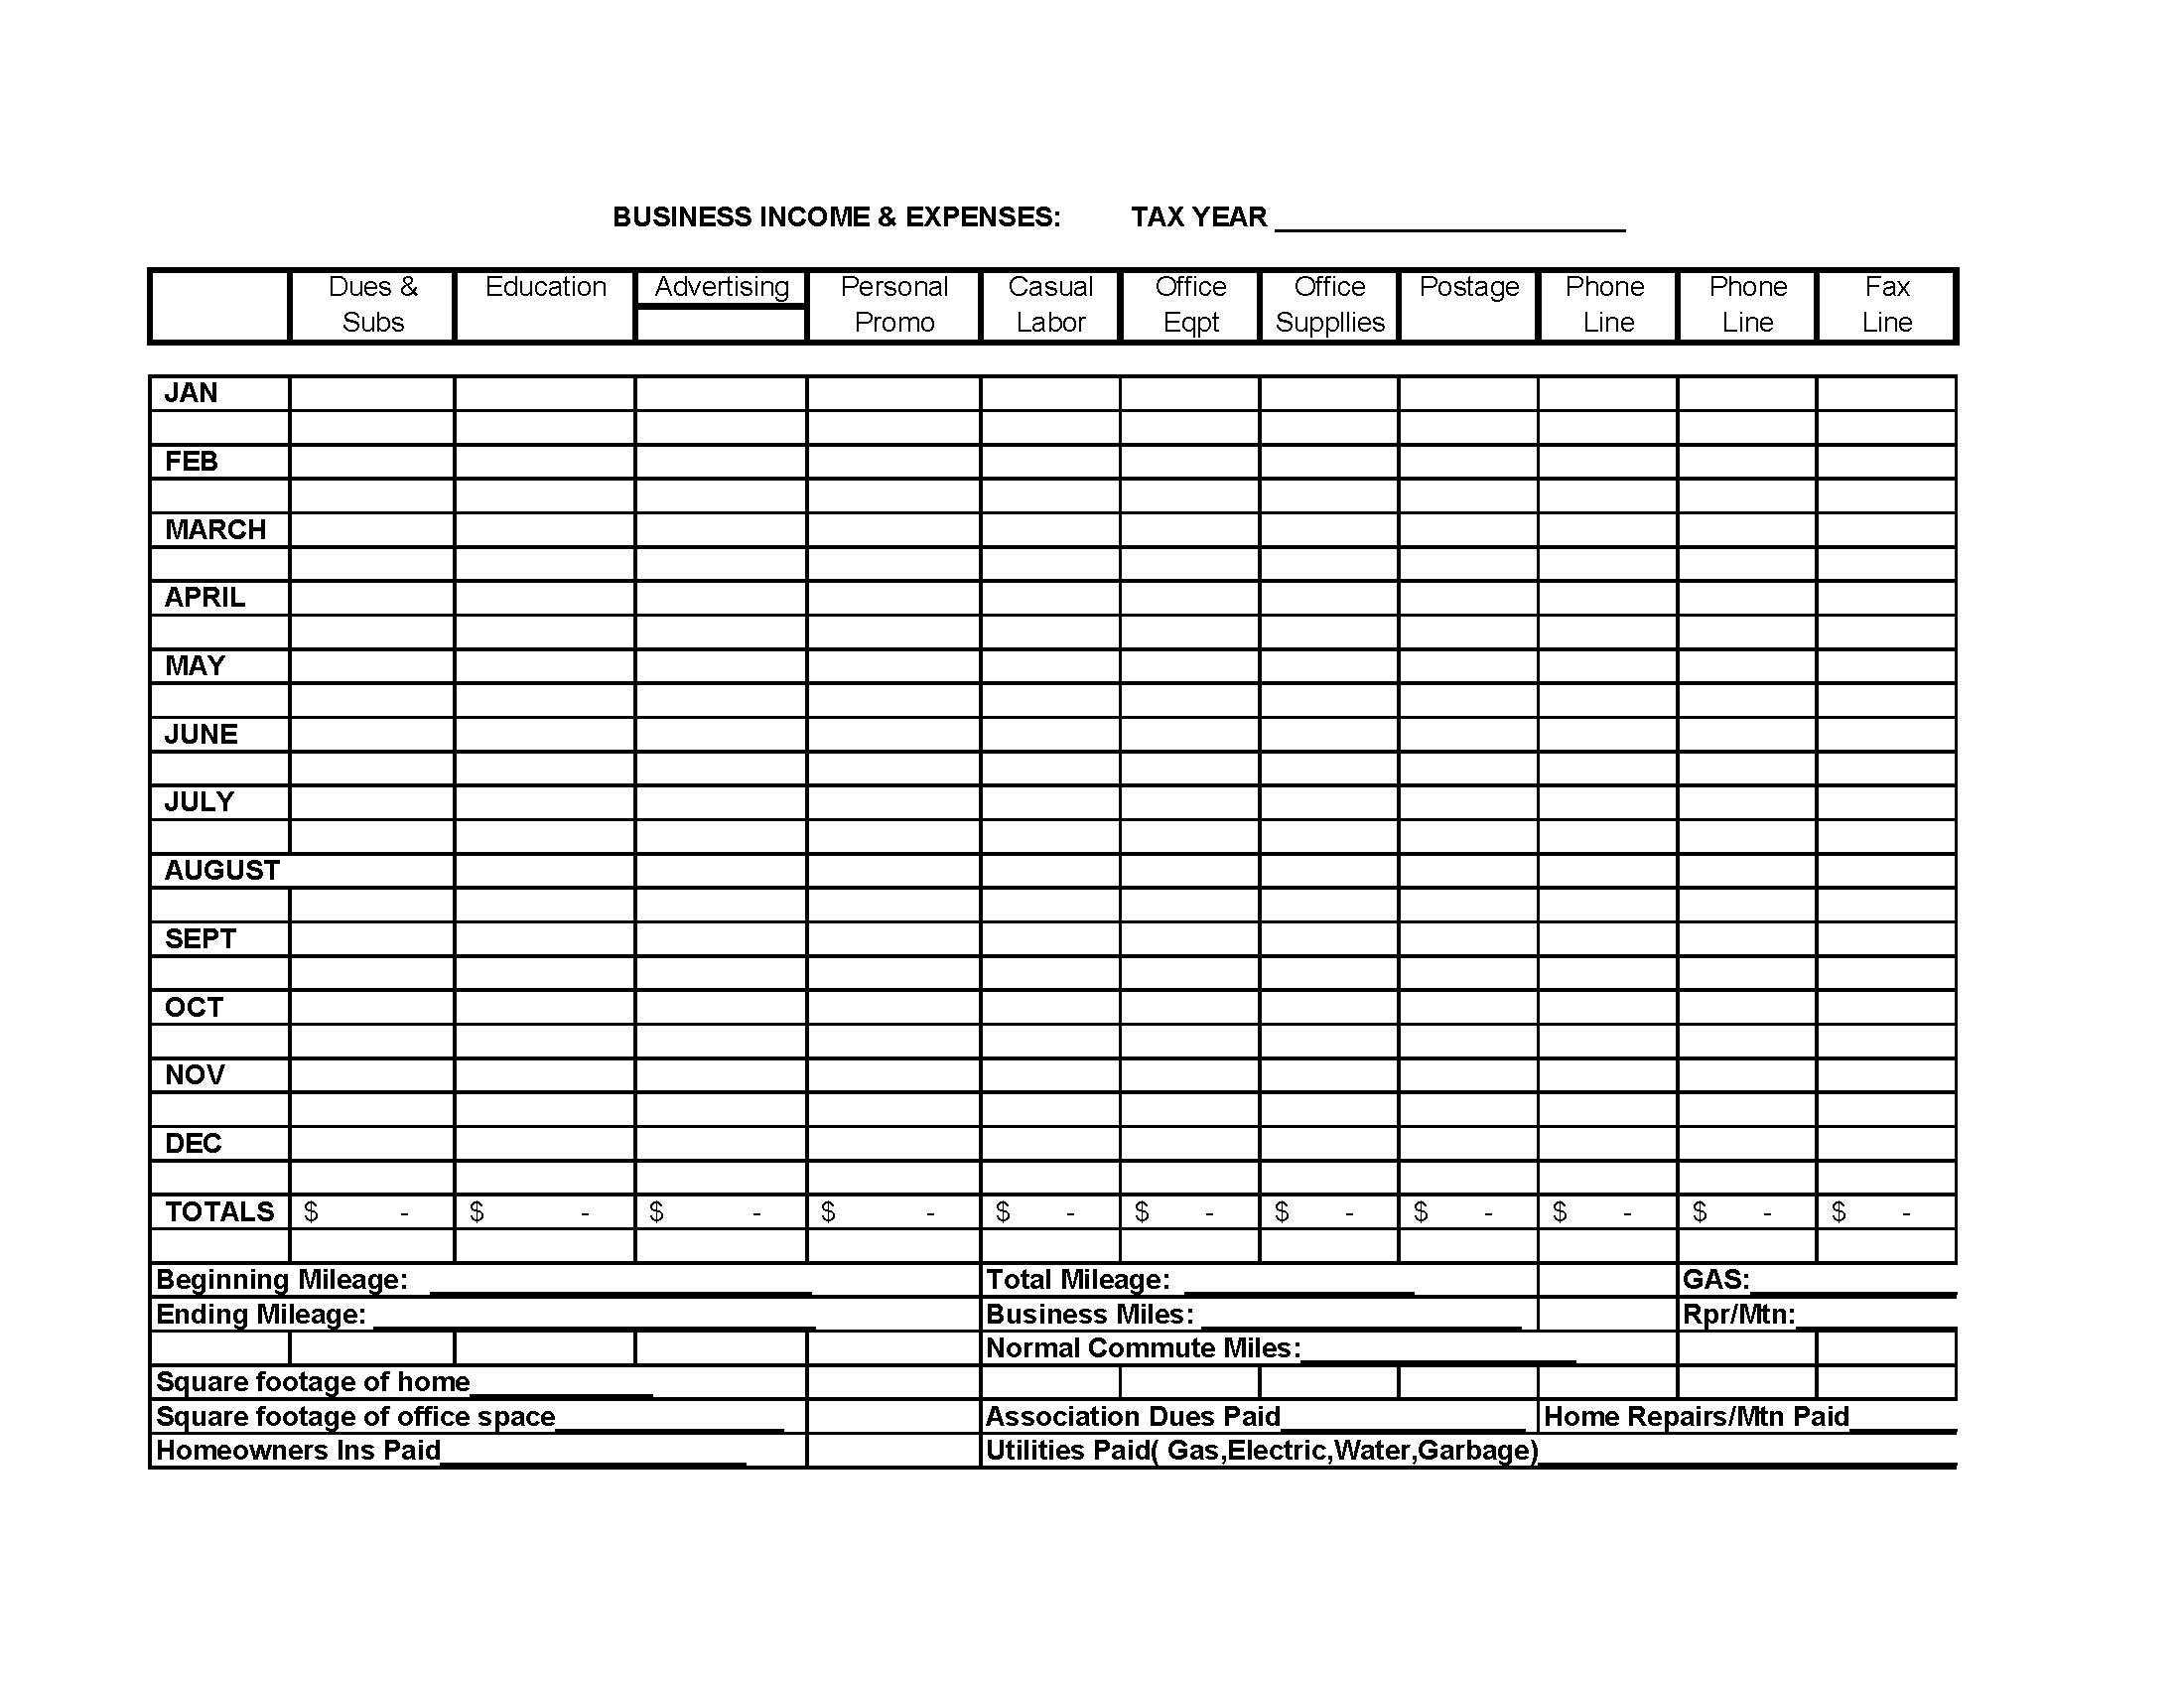 8 Best Images Of Tax Preparation Organizer Worksheet